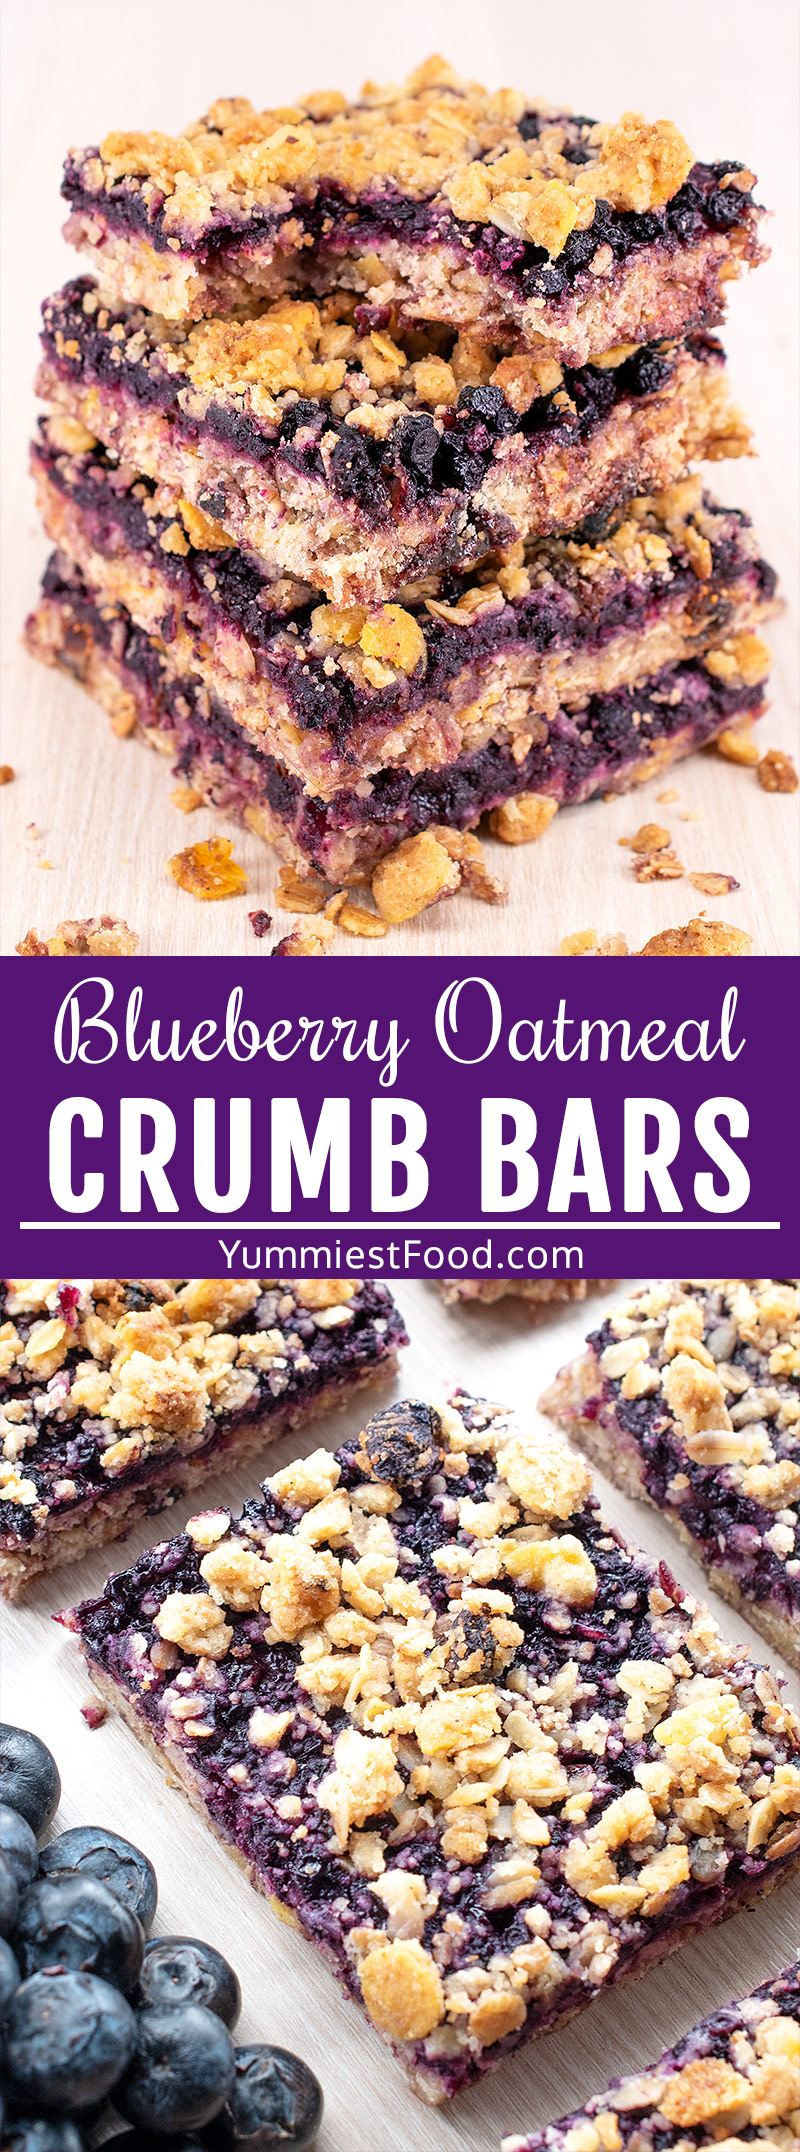 These easy Healthy Breakfast Blueberry Oatmeal Crumb Bars are perfect for breakfast, snack or dessert and are suitable for people who follow the Paleo diet or love clean eating